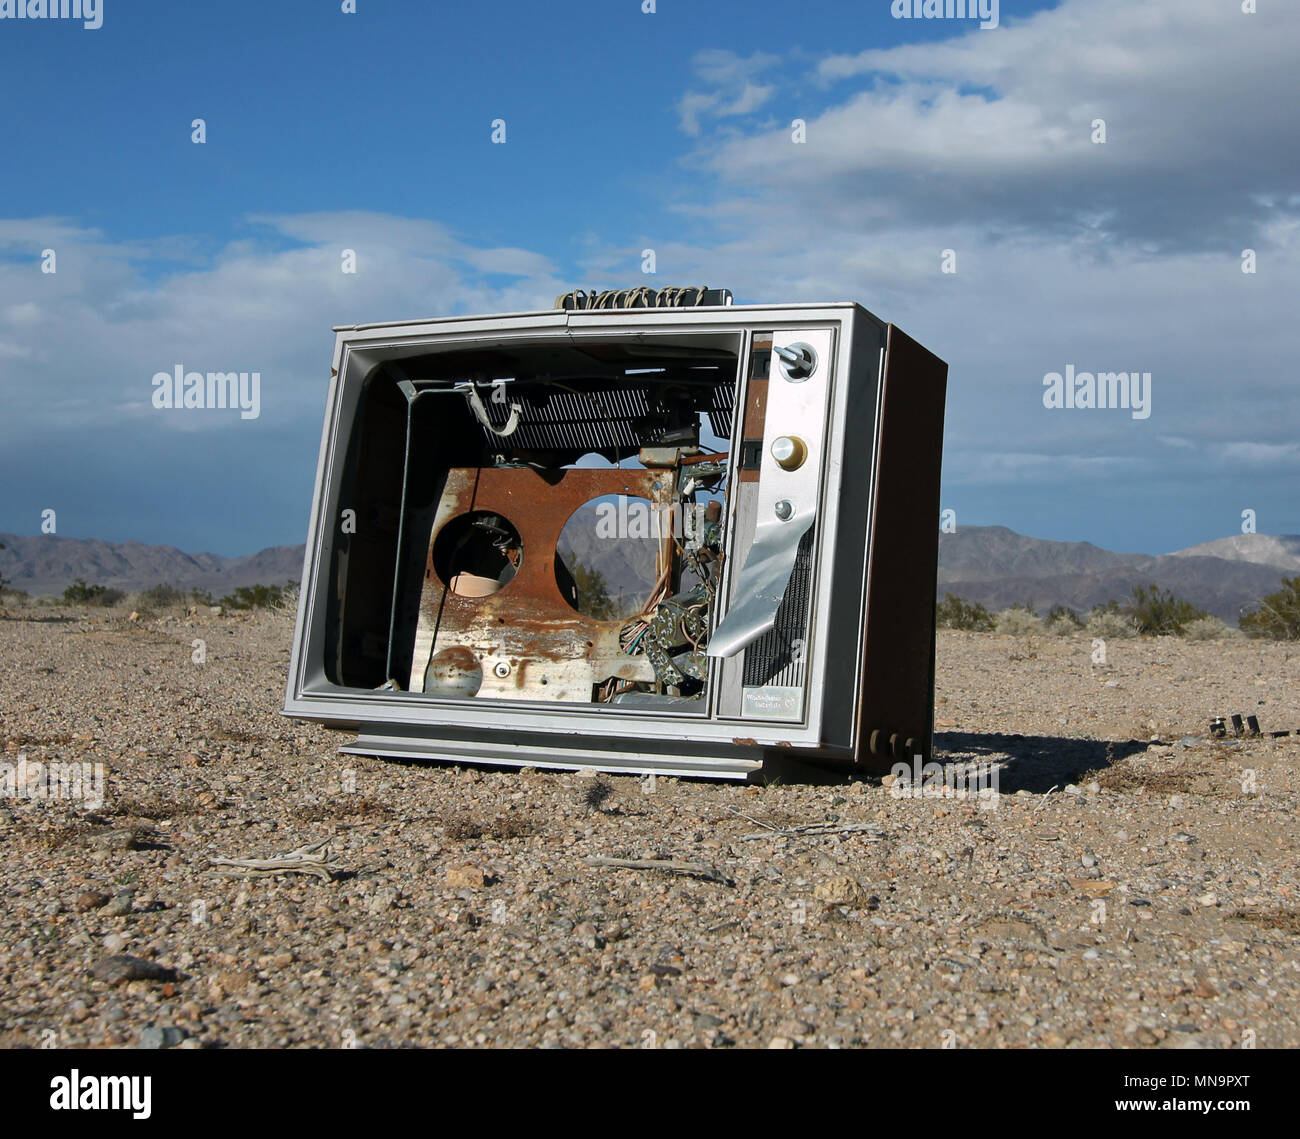 An old TV, a television, broken and no screen, sits on the sand of the high desert, the Mojave, in Wonder Valley, near Joshua Tree, California, USA - Stock Image